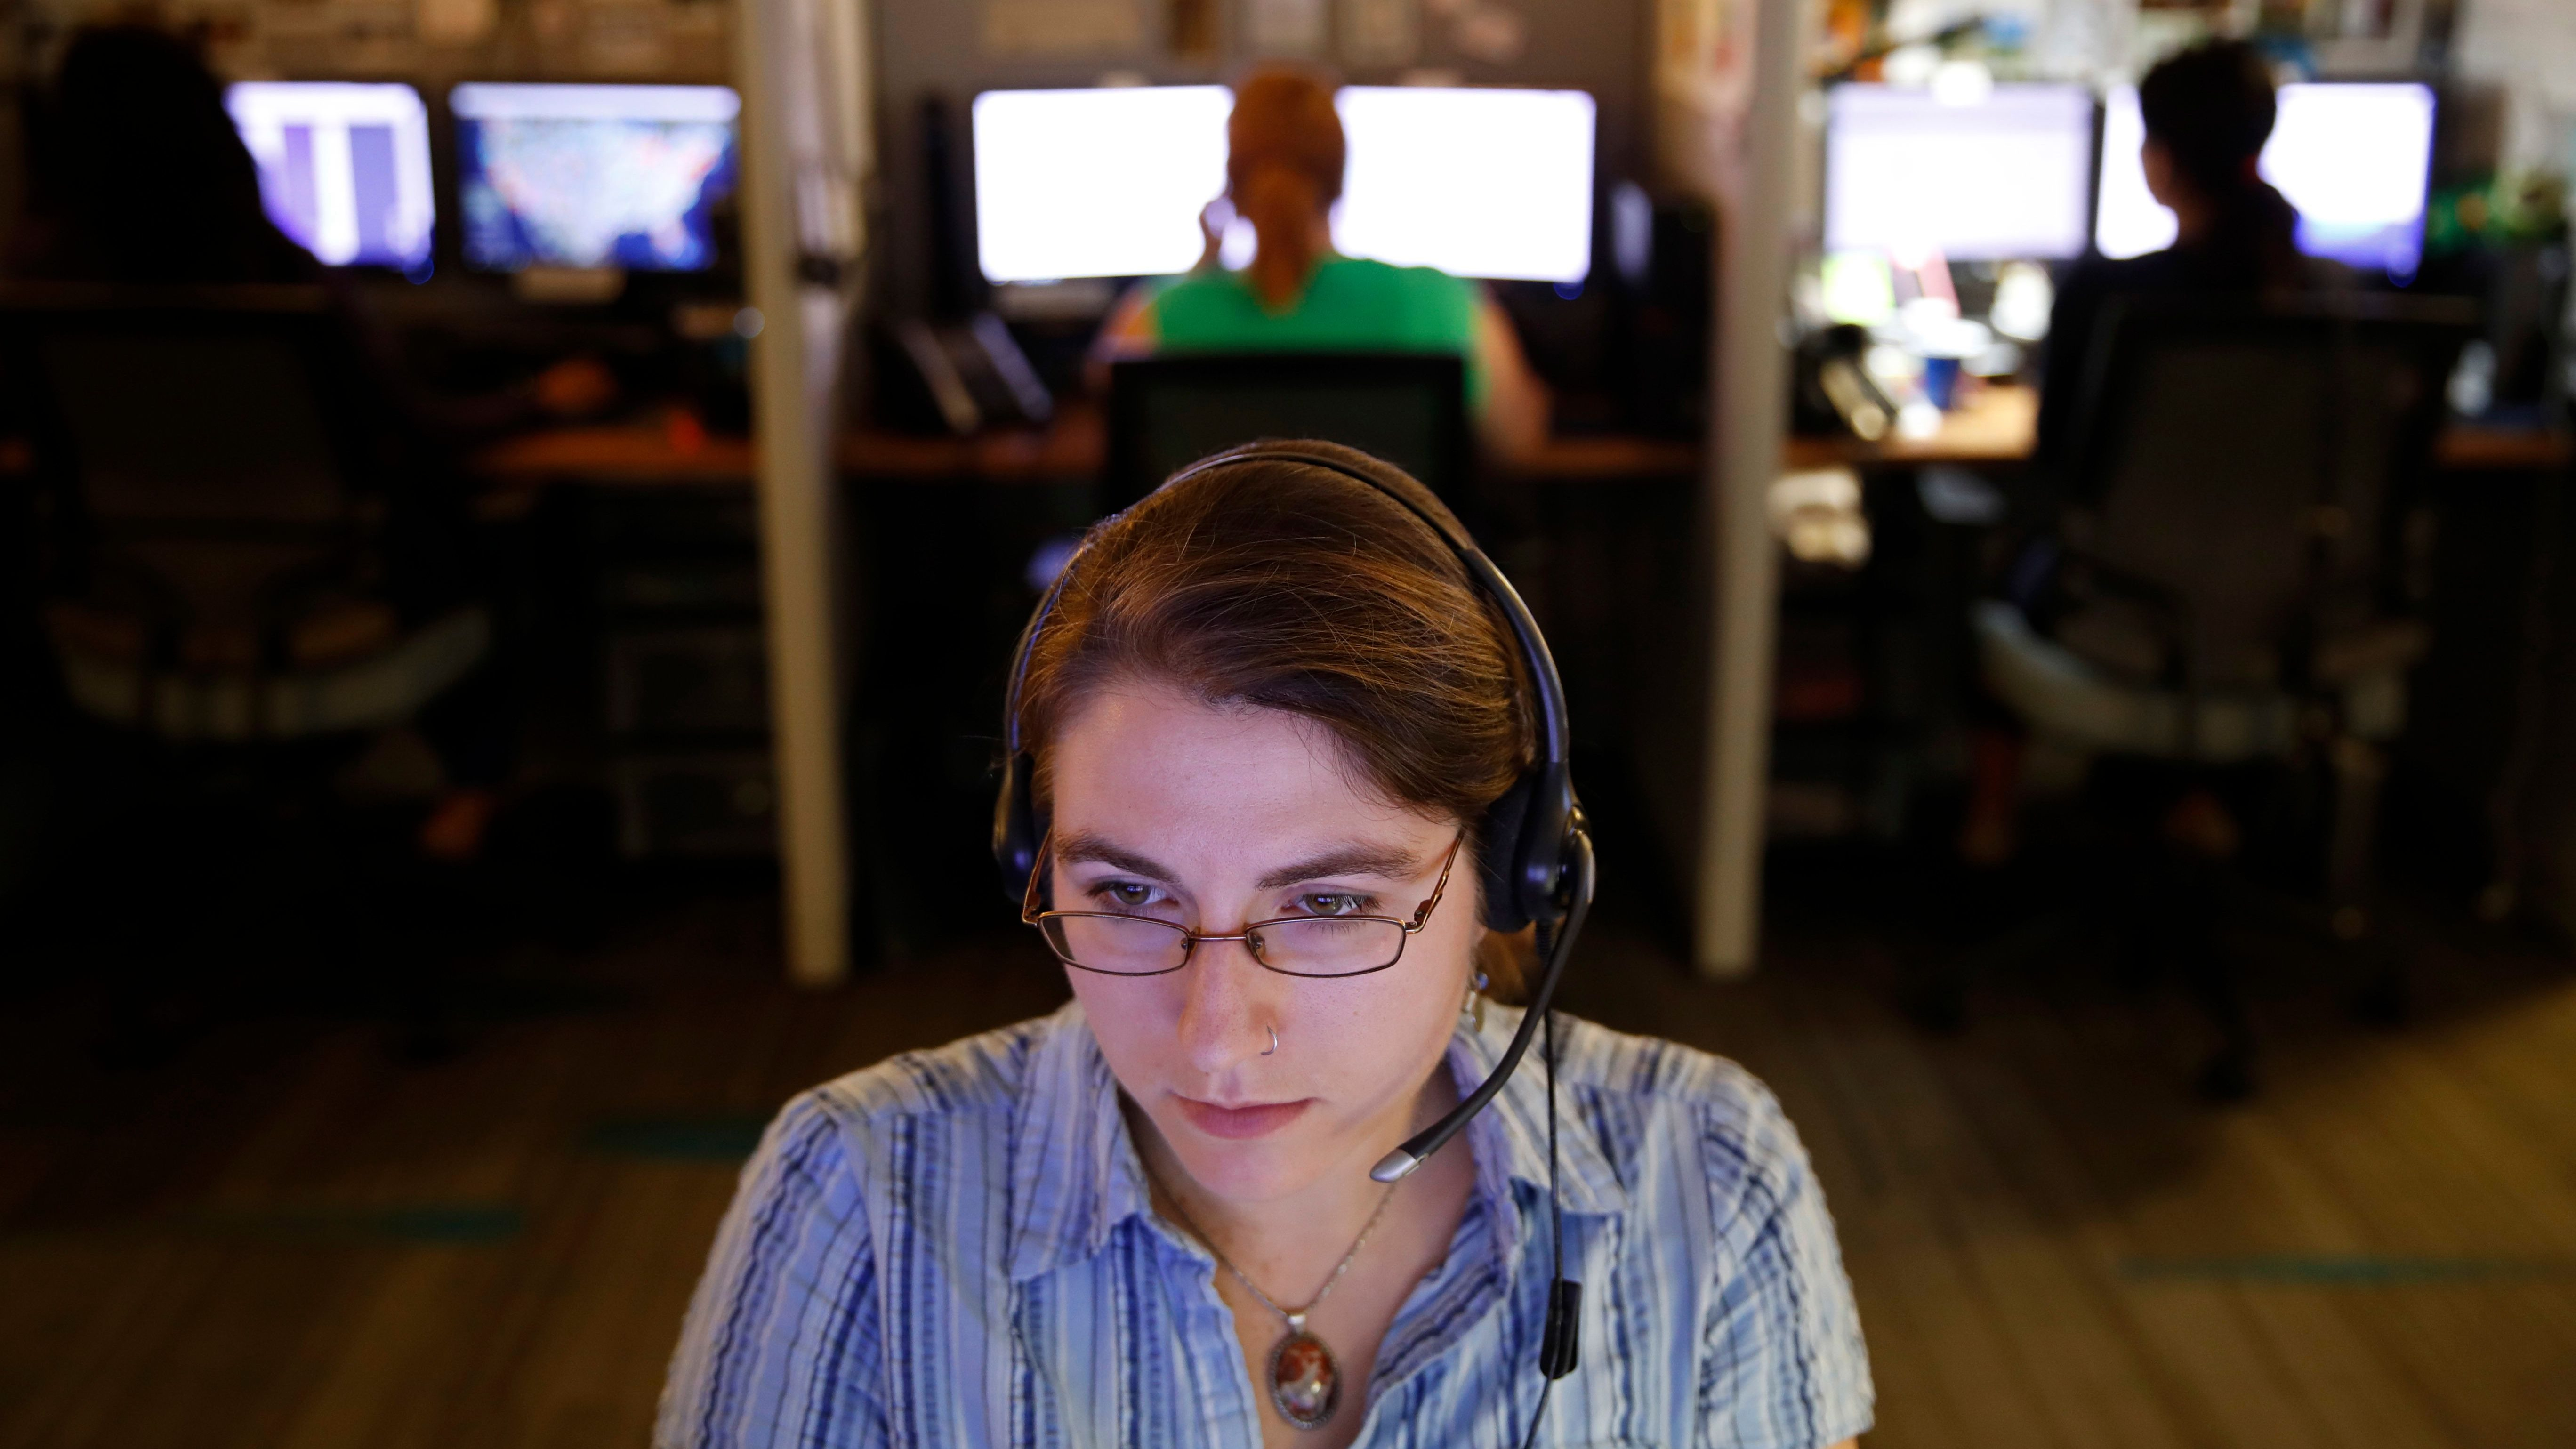 A hotline advocate takes a call from a potential victim of trafficking while working at the Human Trafficking Hotline call center, Tuesday, Sept. 26, 2017, in Washington. People in the anti-trafficking field say it performs well at two vital roles _ as a conduit for people to report suspected trafficking and as an immediate resource for trafficking victims in need of help. (AP Photo/Jacquelyn Martin)